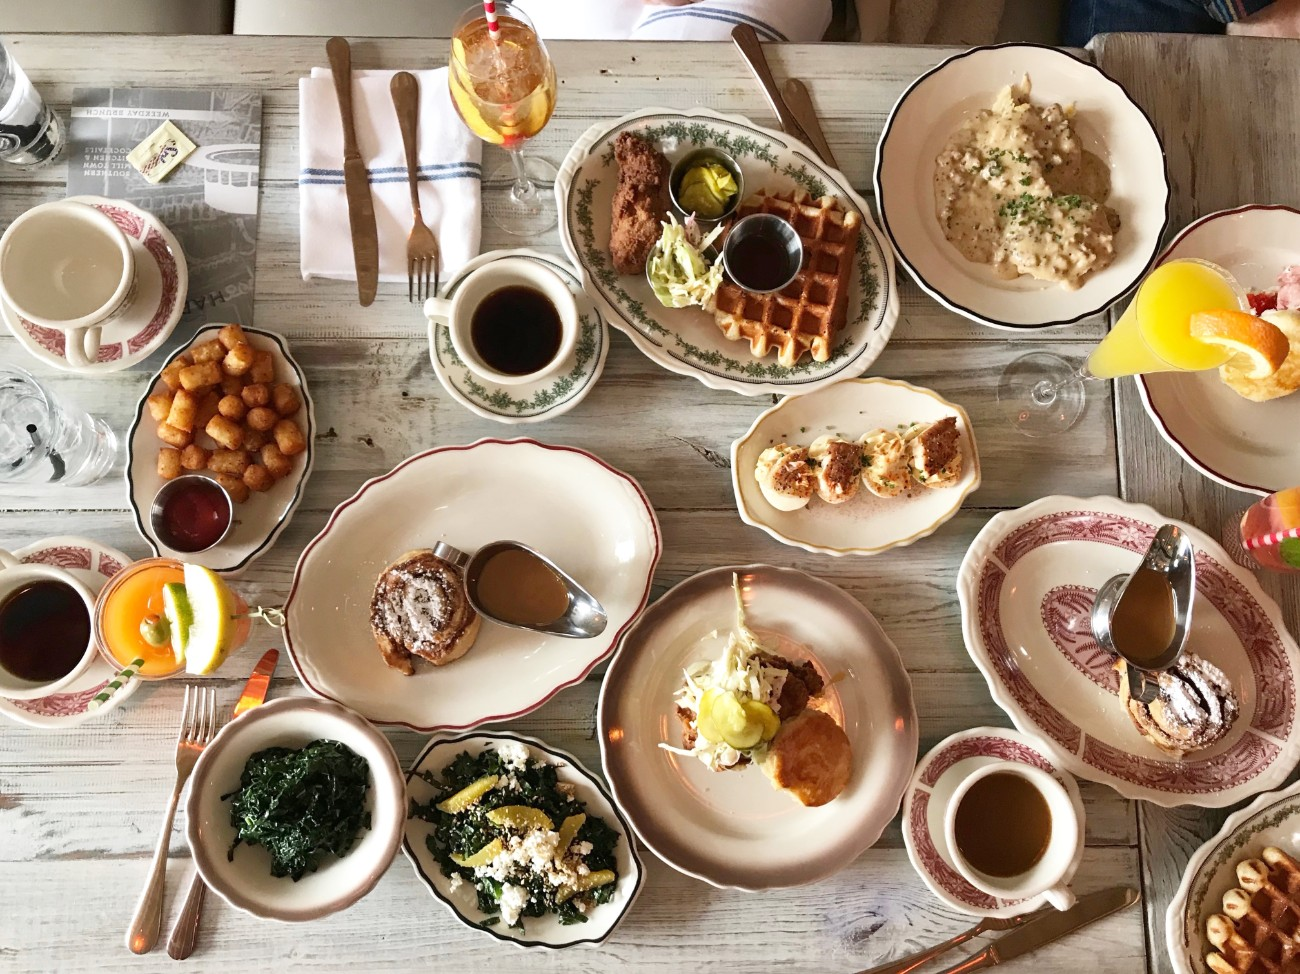 12 best brunch spots in Charlotte, plus what to order at each